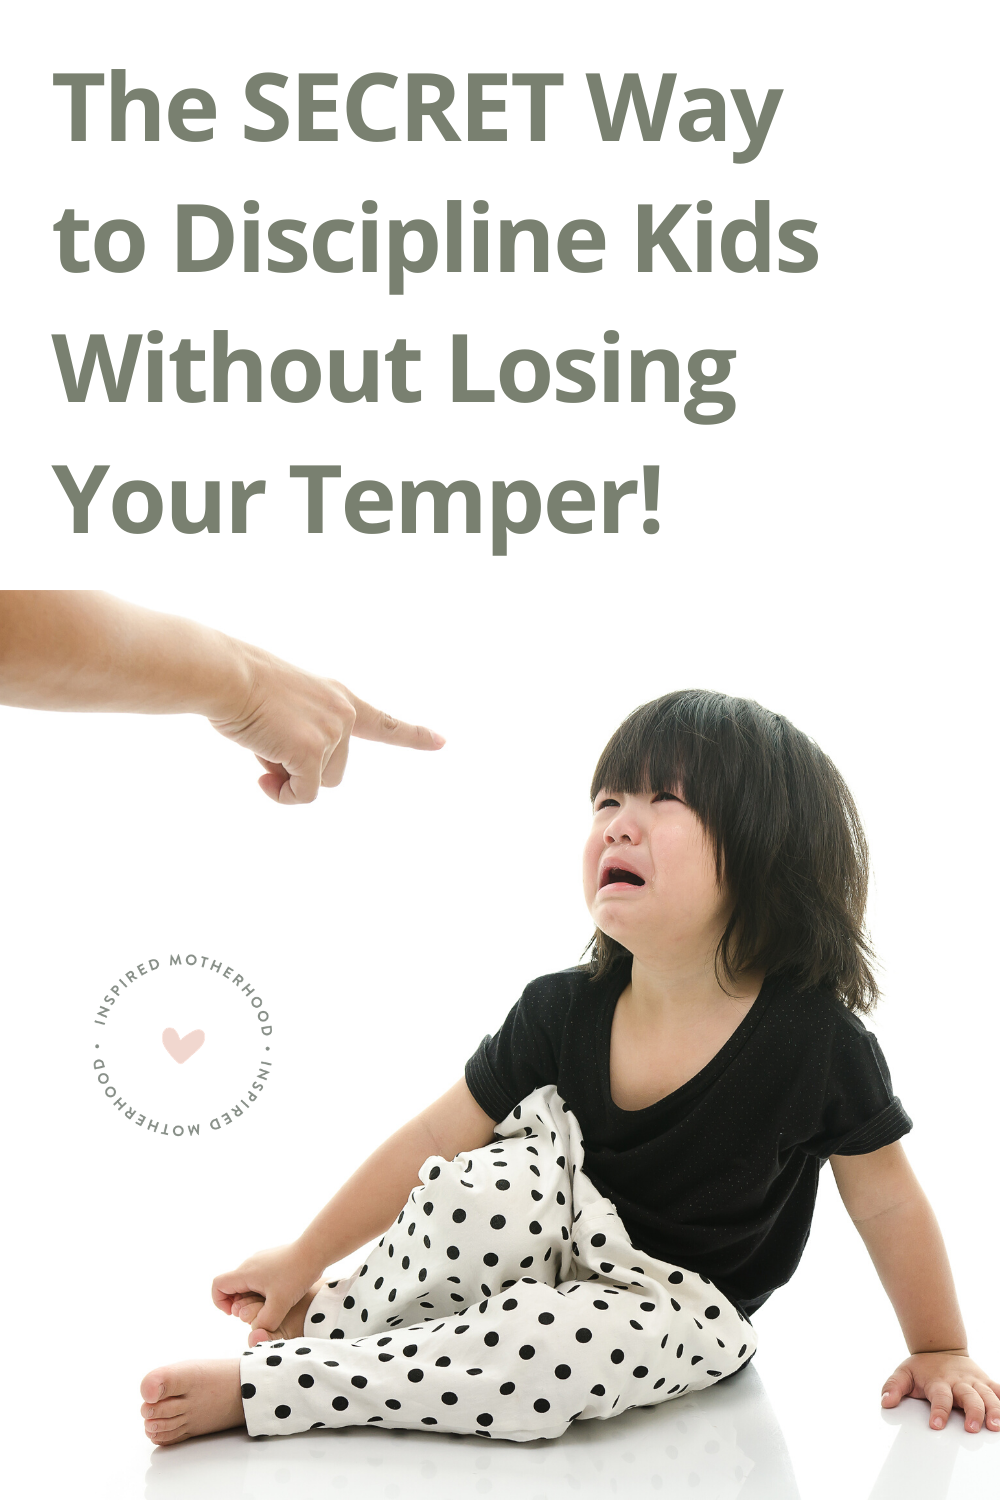 I didn't want to be the parent who yelled at my child to listen, but I didn't know what else to do. How do you get a child to listen without yelling? You MUST try this amazing parenting tool: setting enforceable limits with kids. Based on Love and Logic use this tool to discipline without screaming.